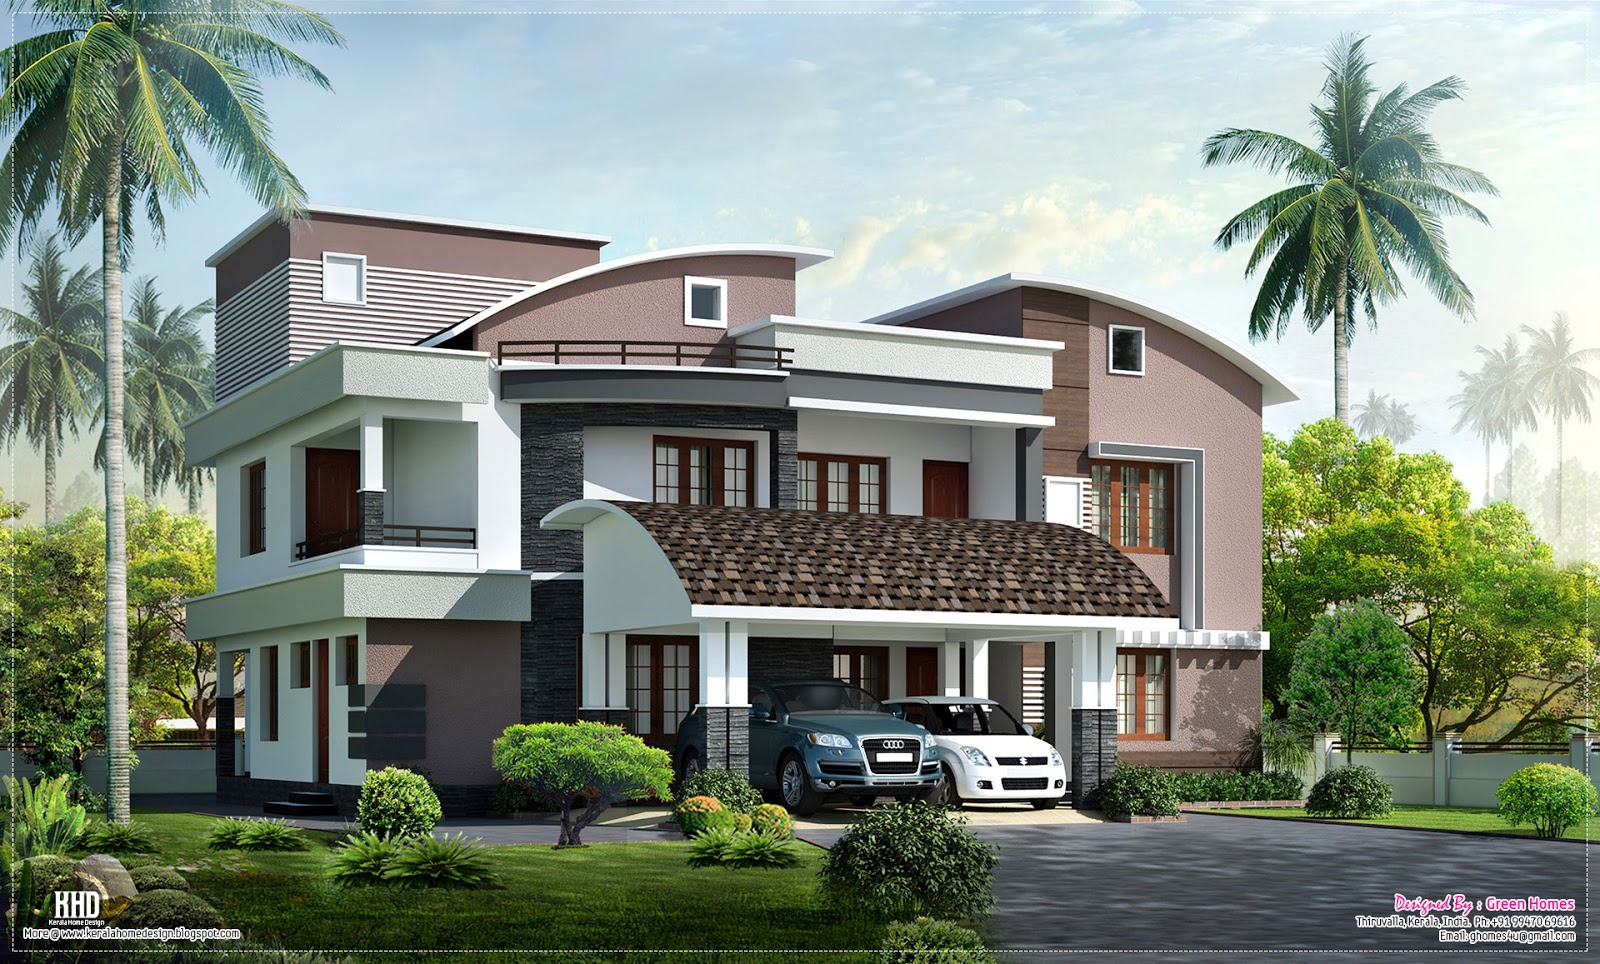 ... luxury villa exterior design - Kerala home design and floor plans